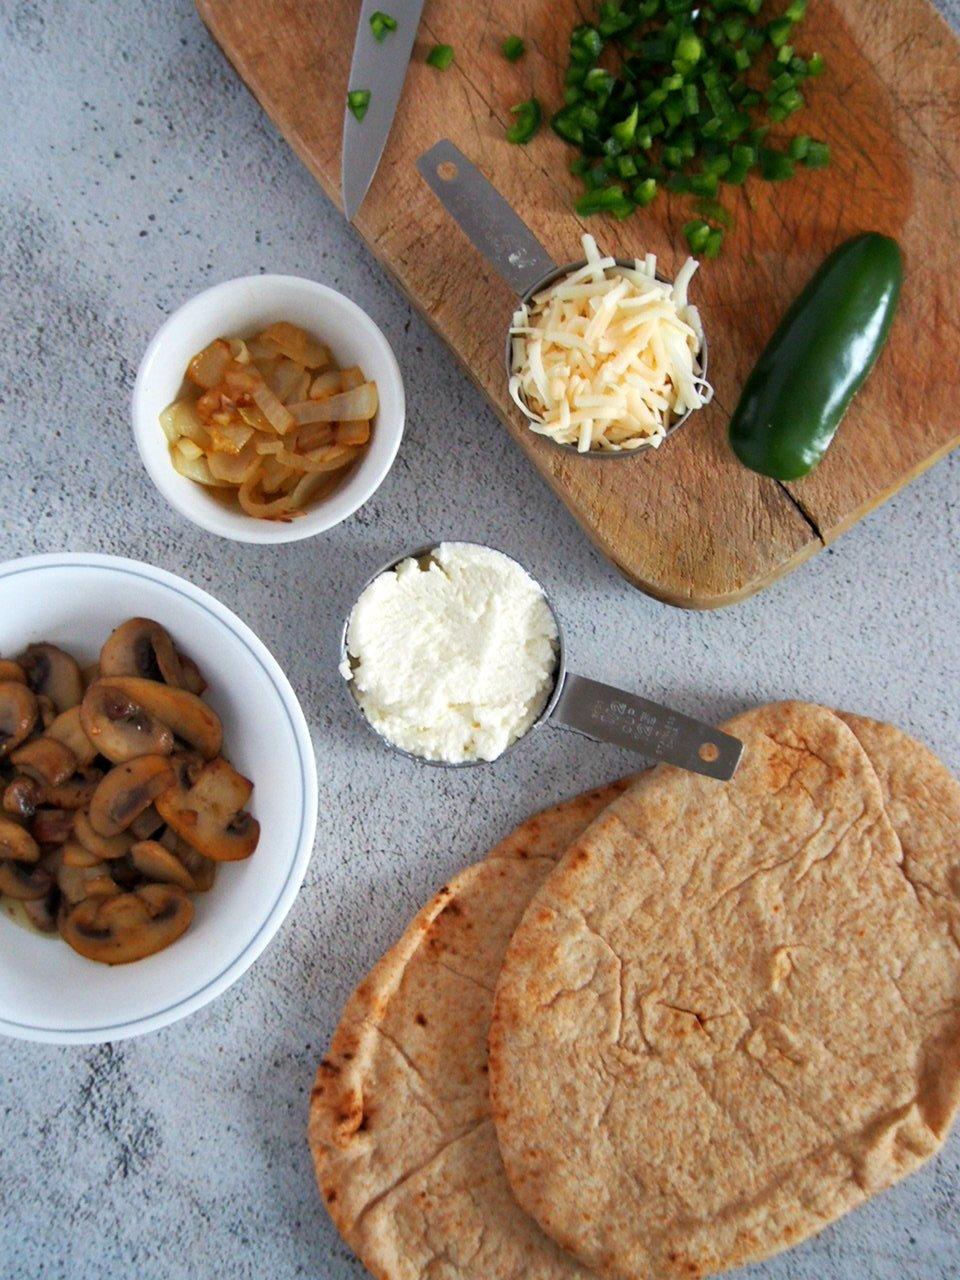 Ingredients for Mushroom Jalapeno Naan Pizza